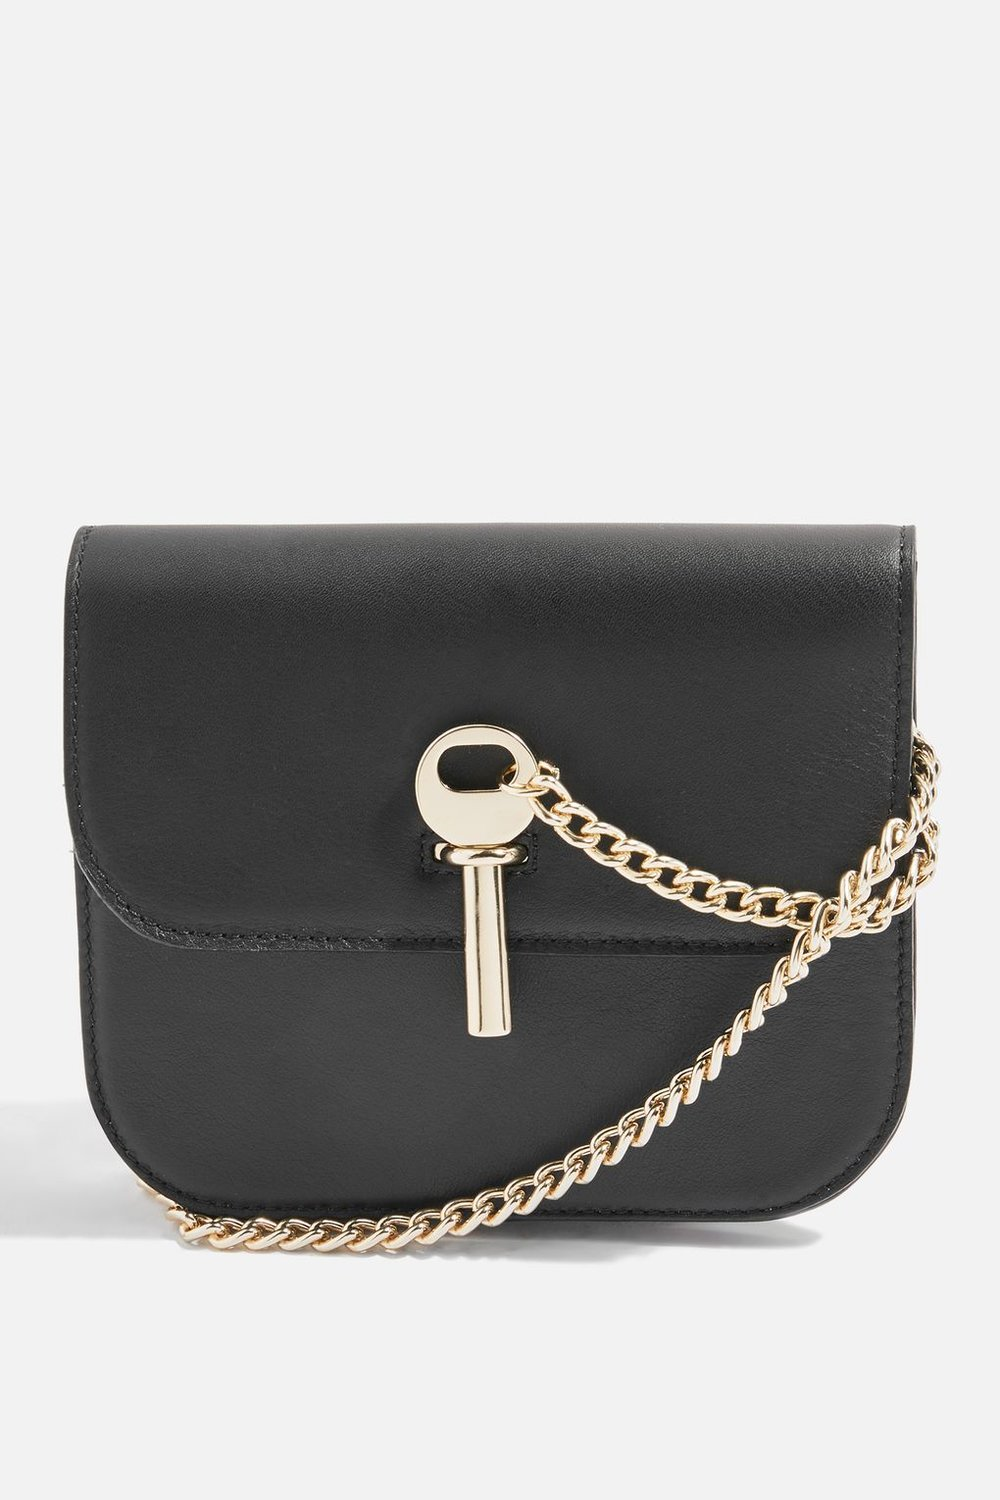 4. Leather bag, £95 by Topshop